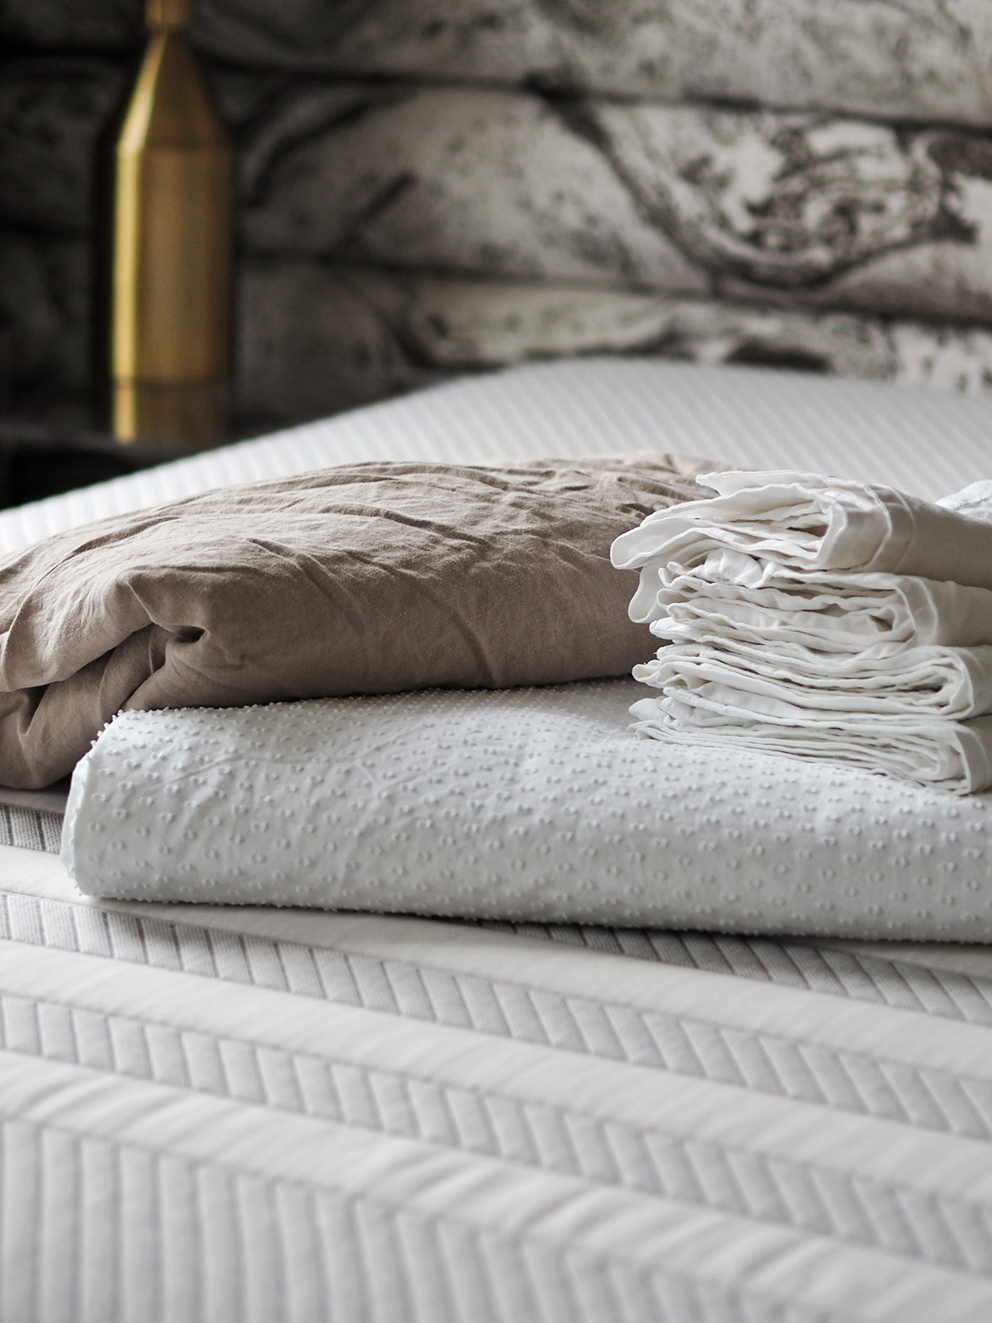 French For Pineapple Blog - Leesa Mattress Review